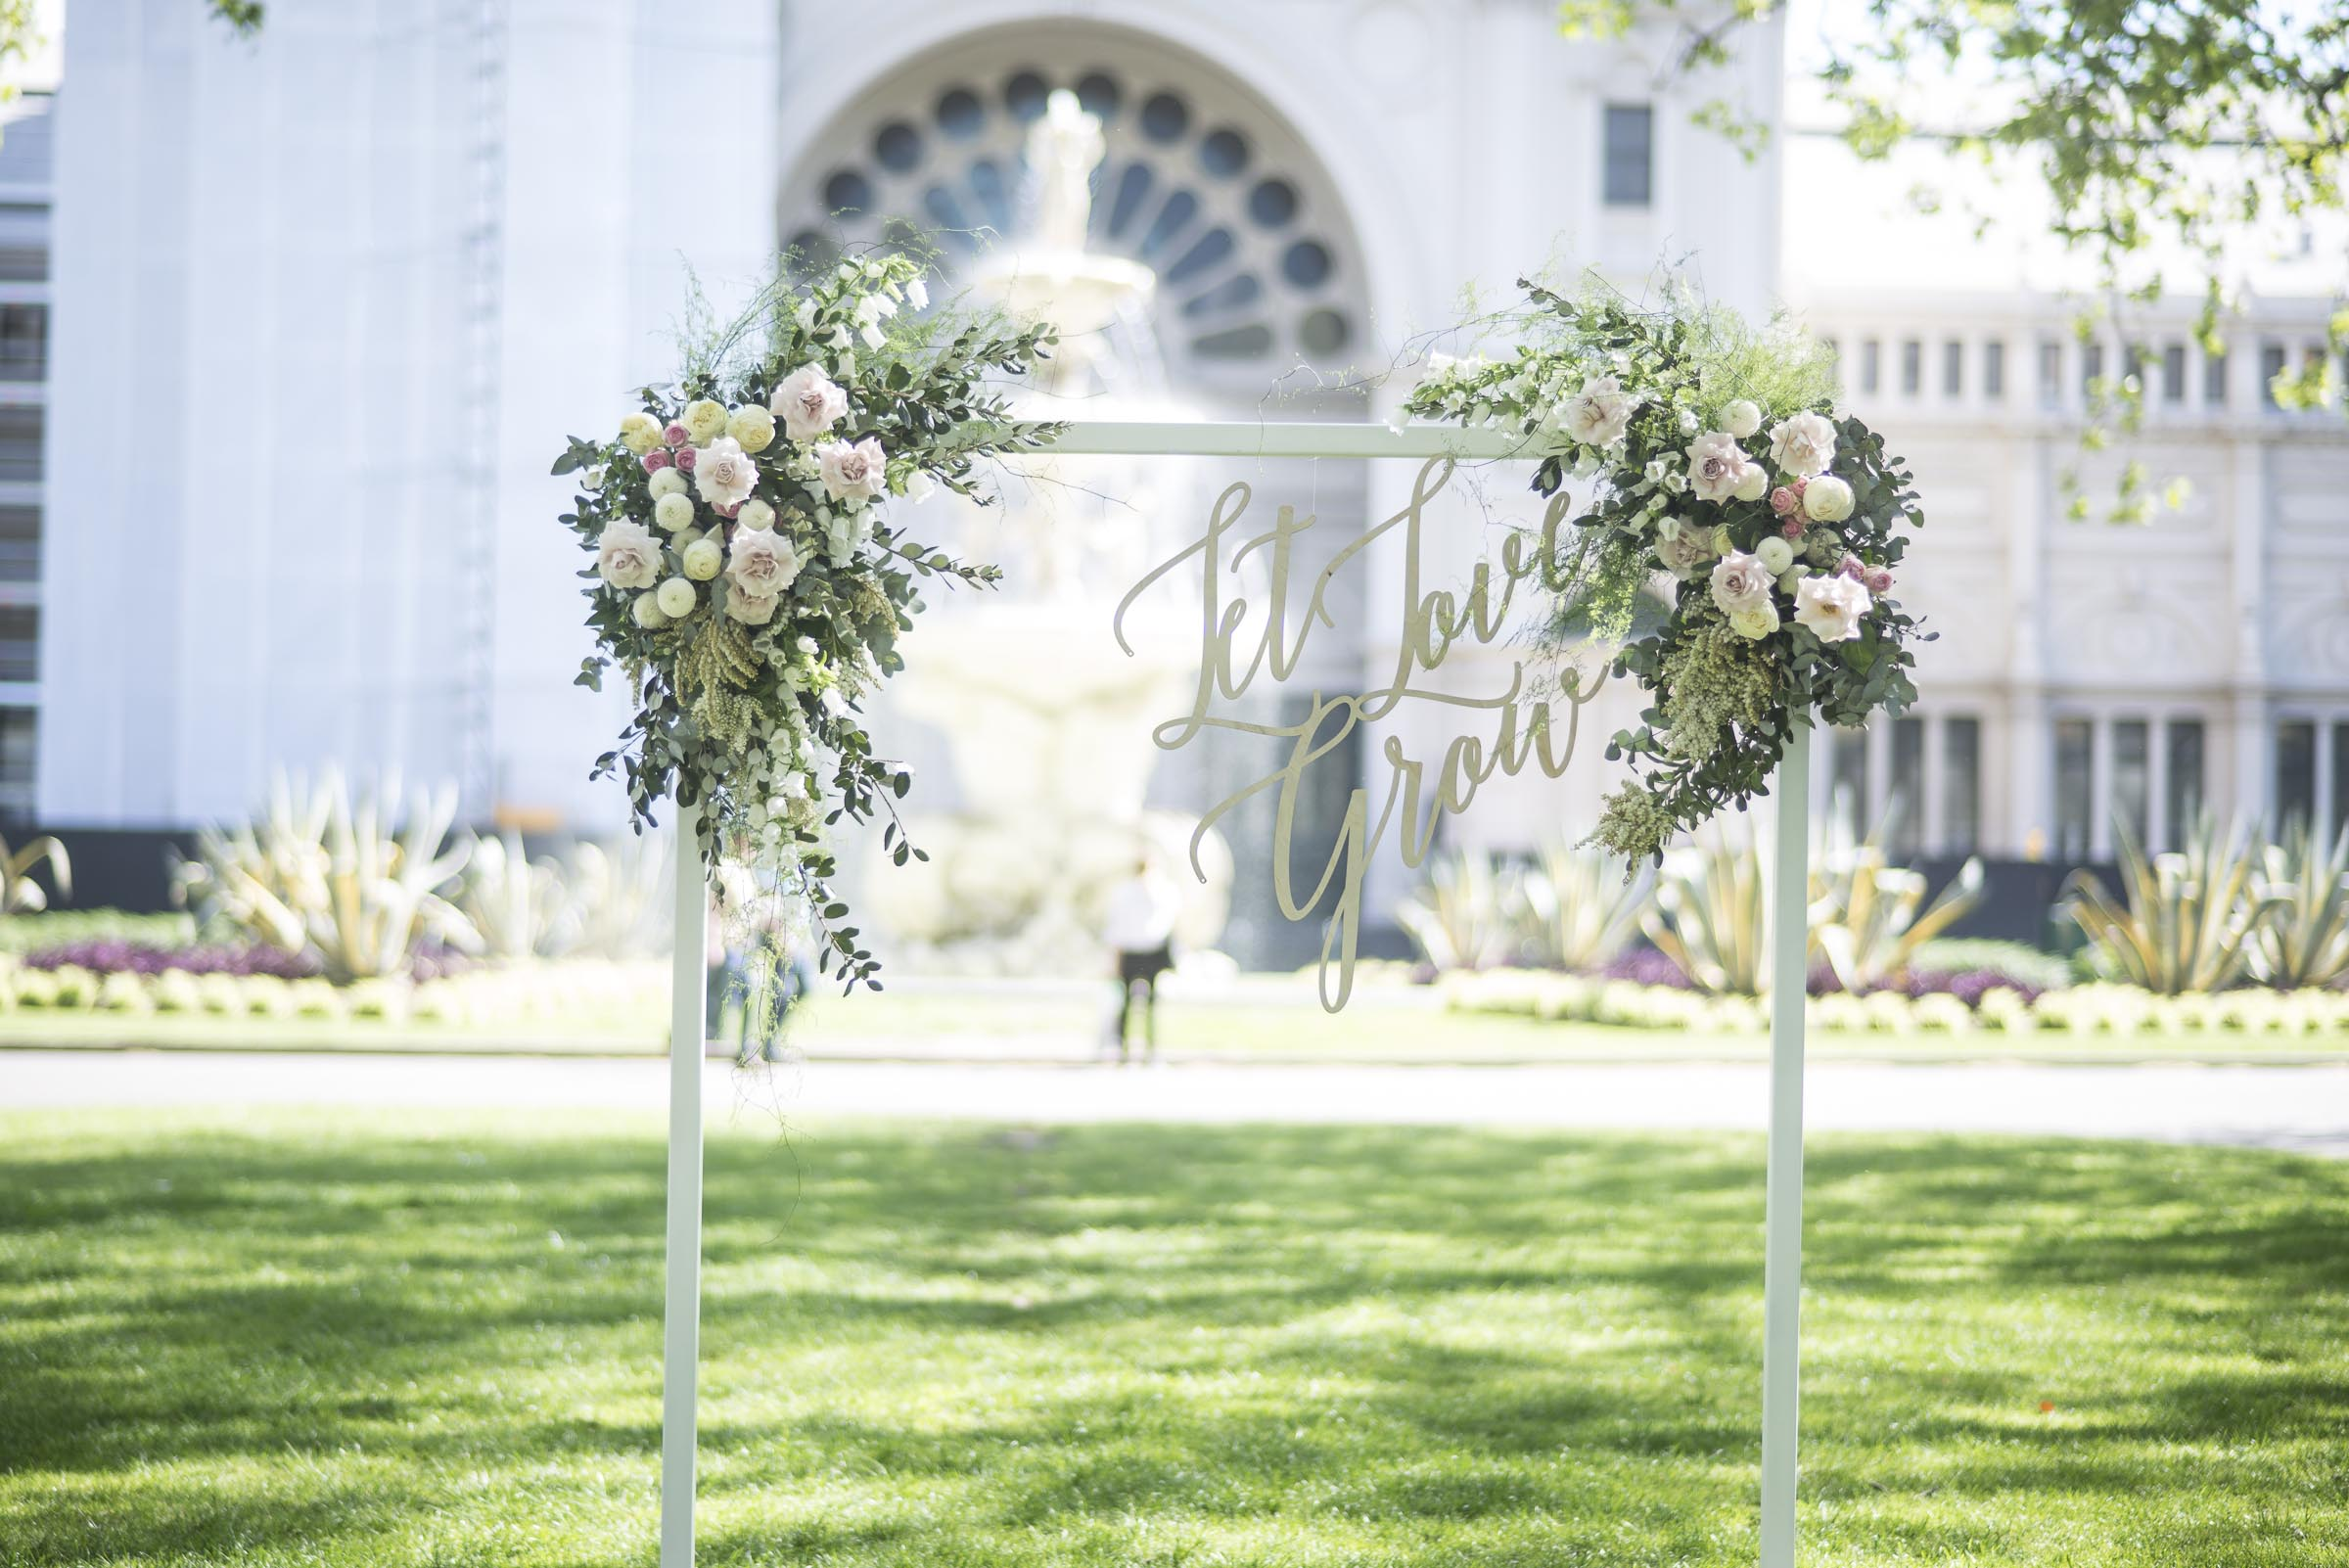 White arch ceremony backdrop